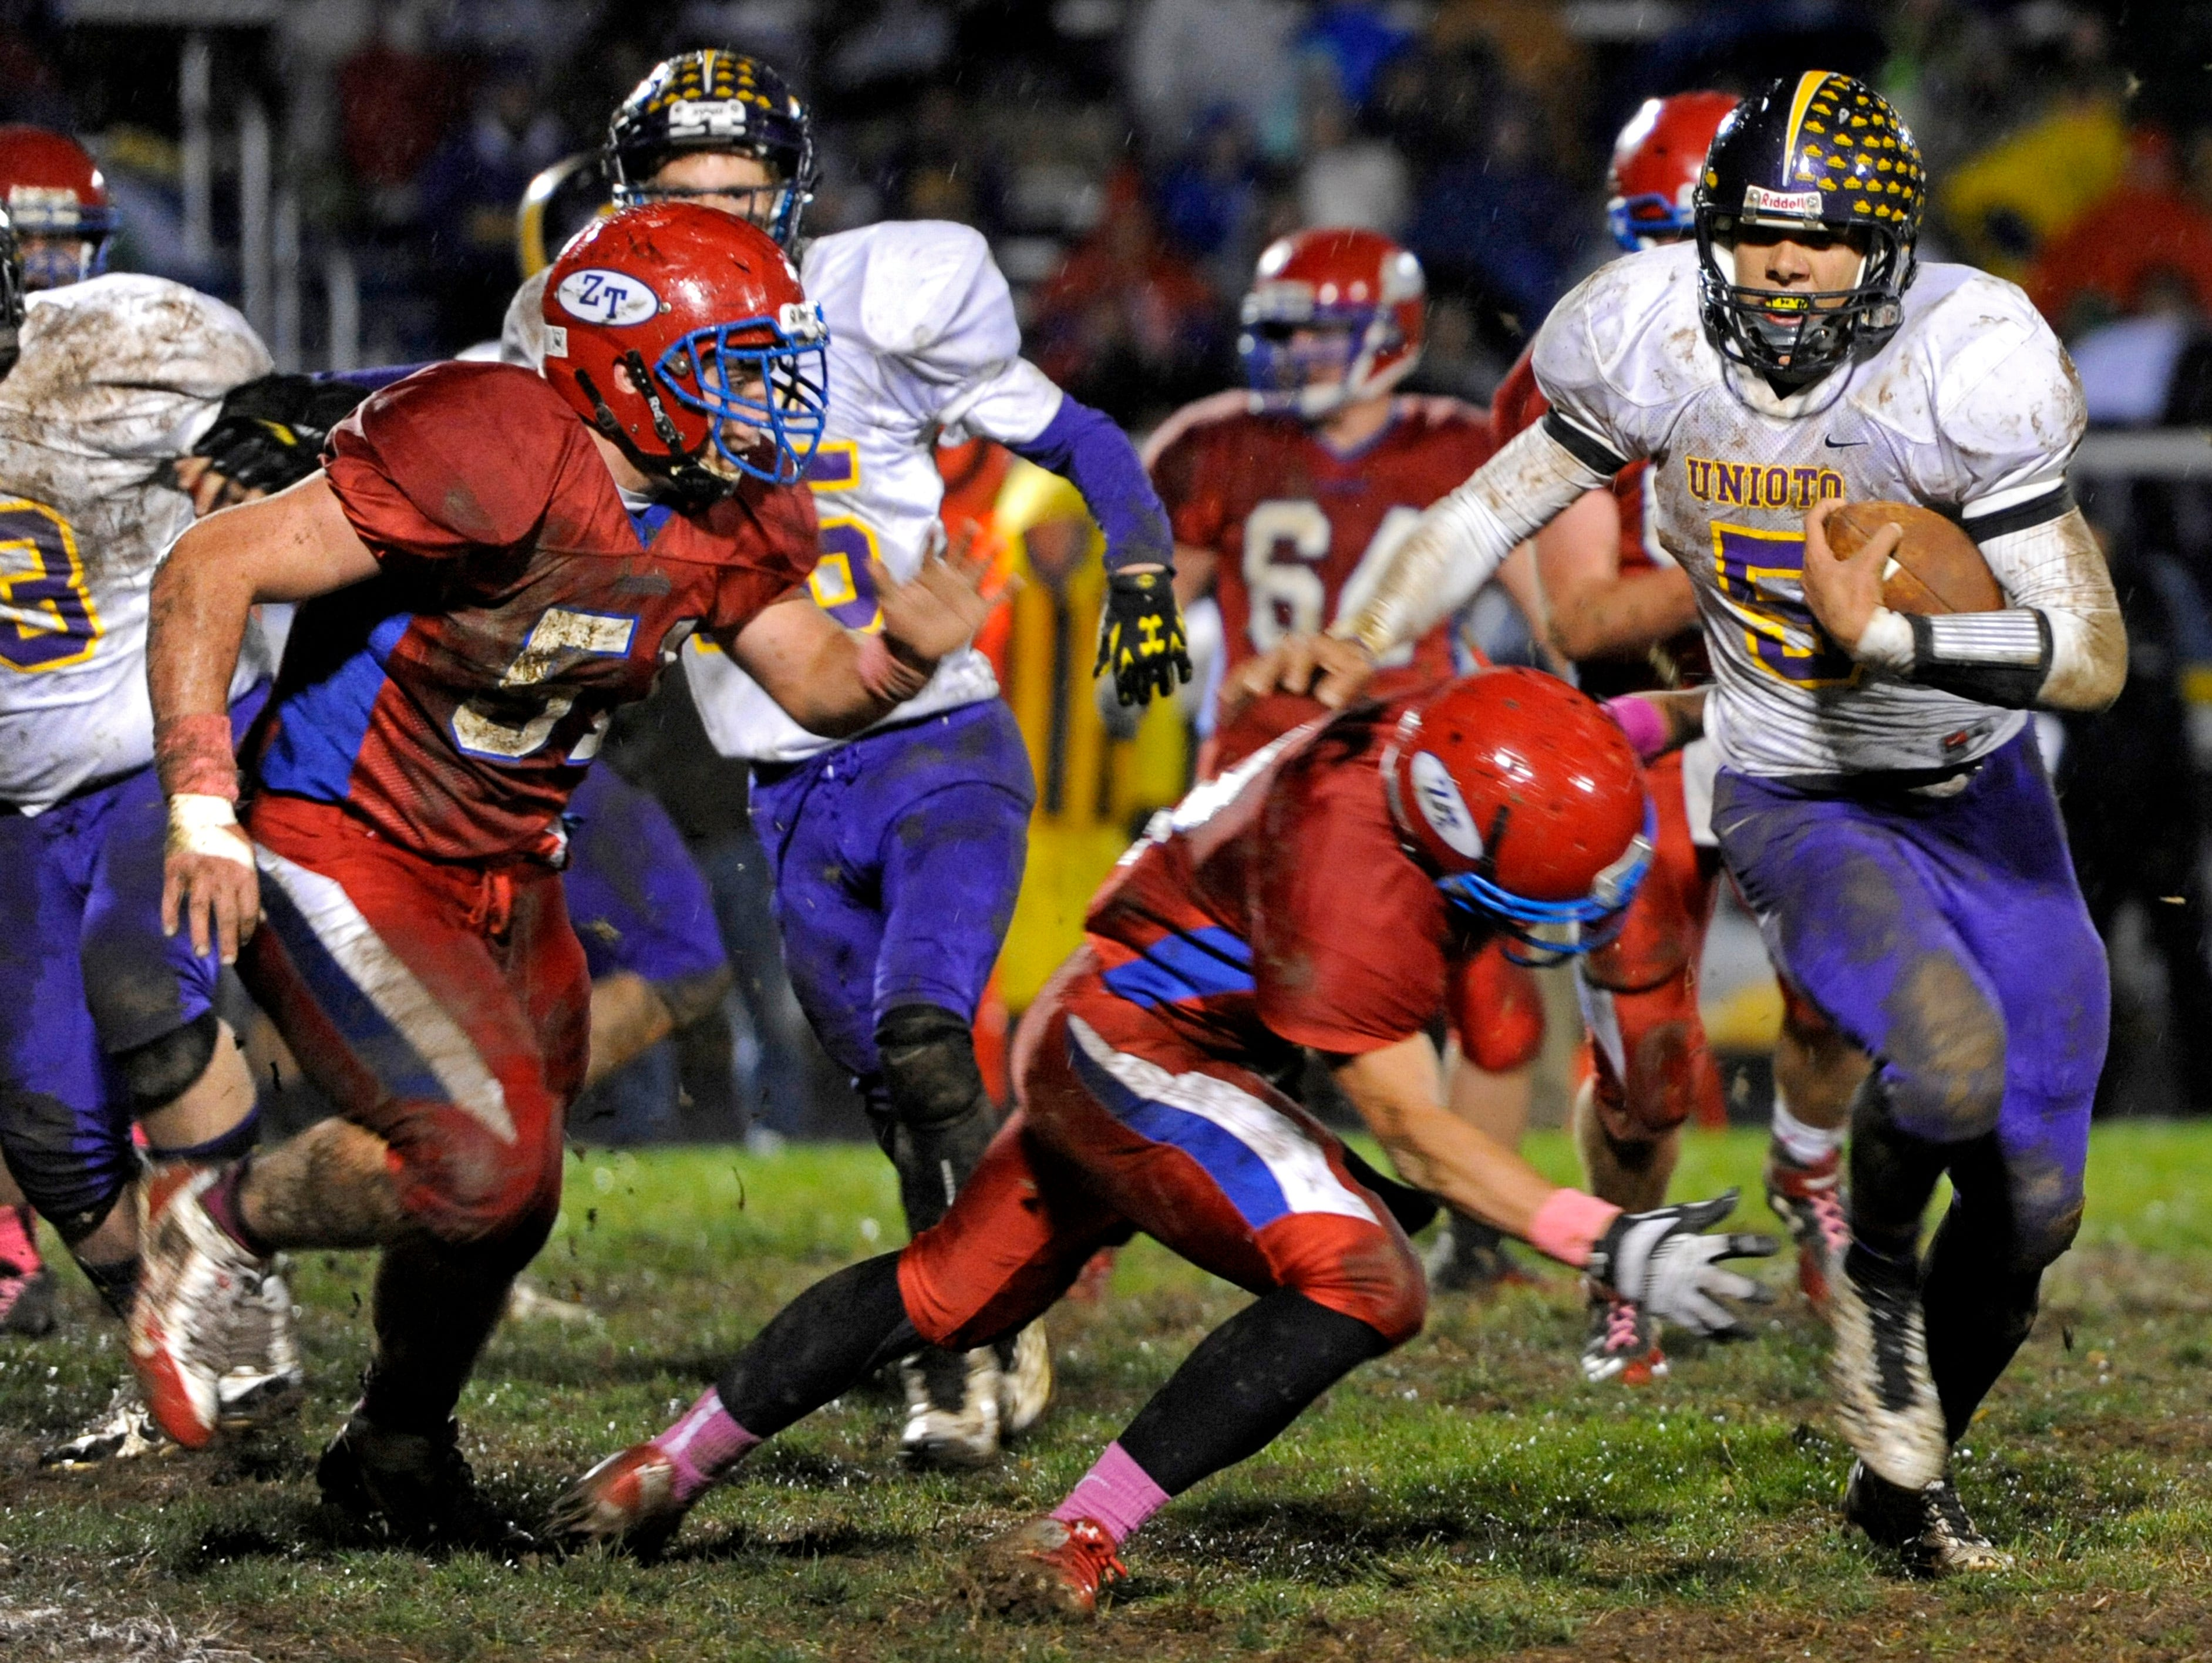 Unioto's Erique Hosley tries to break a tackle before being brought down by Zane Trace defenders during the second quarter of Friday's game.